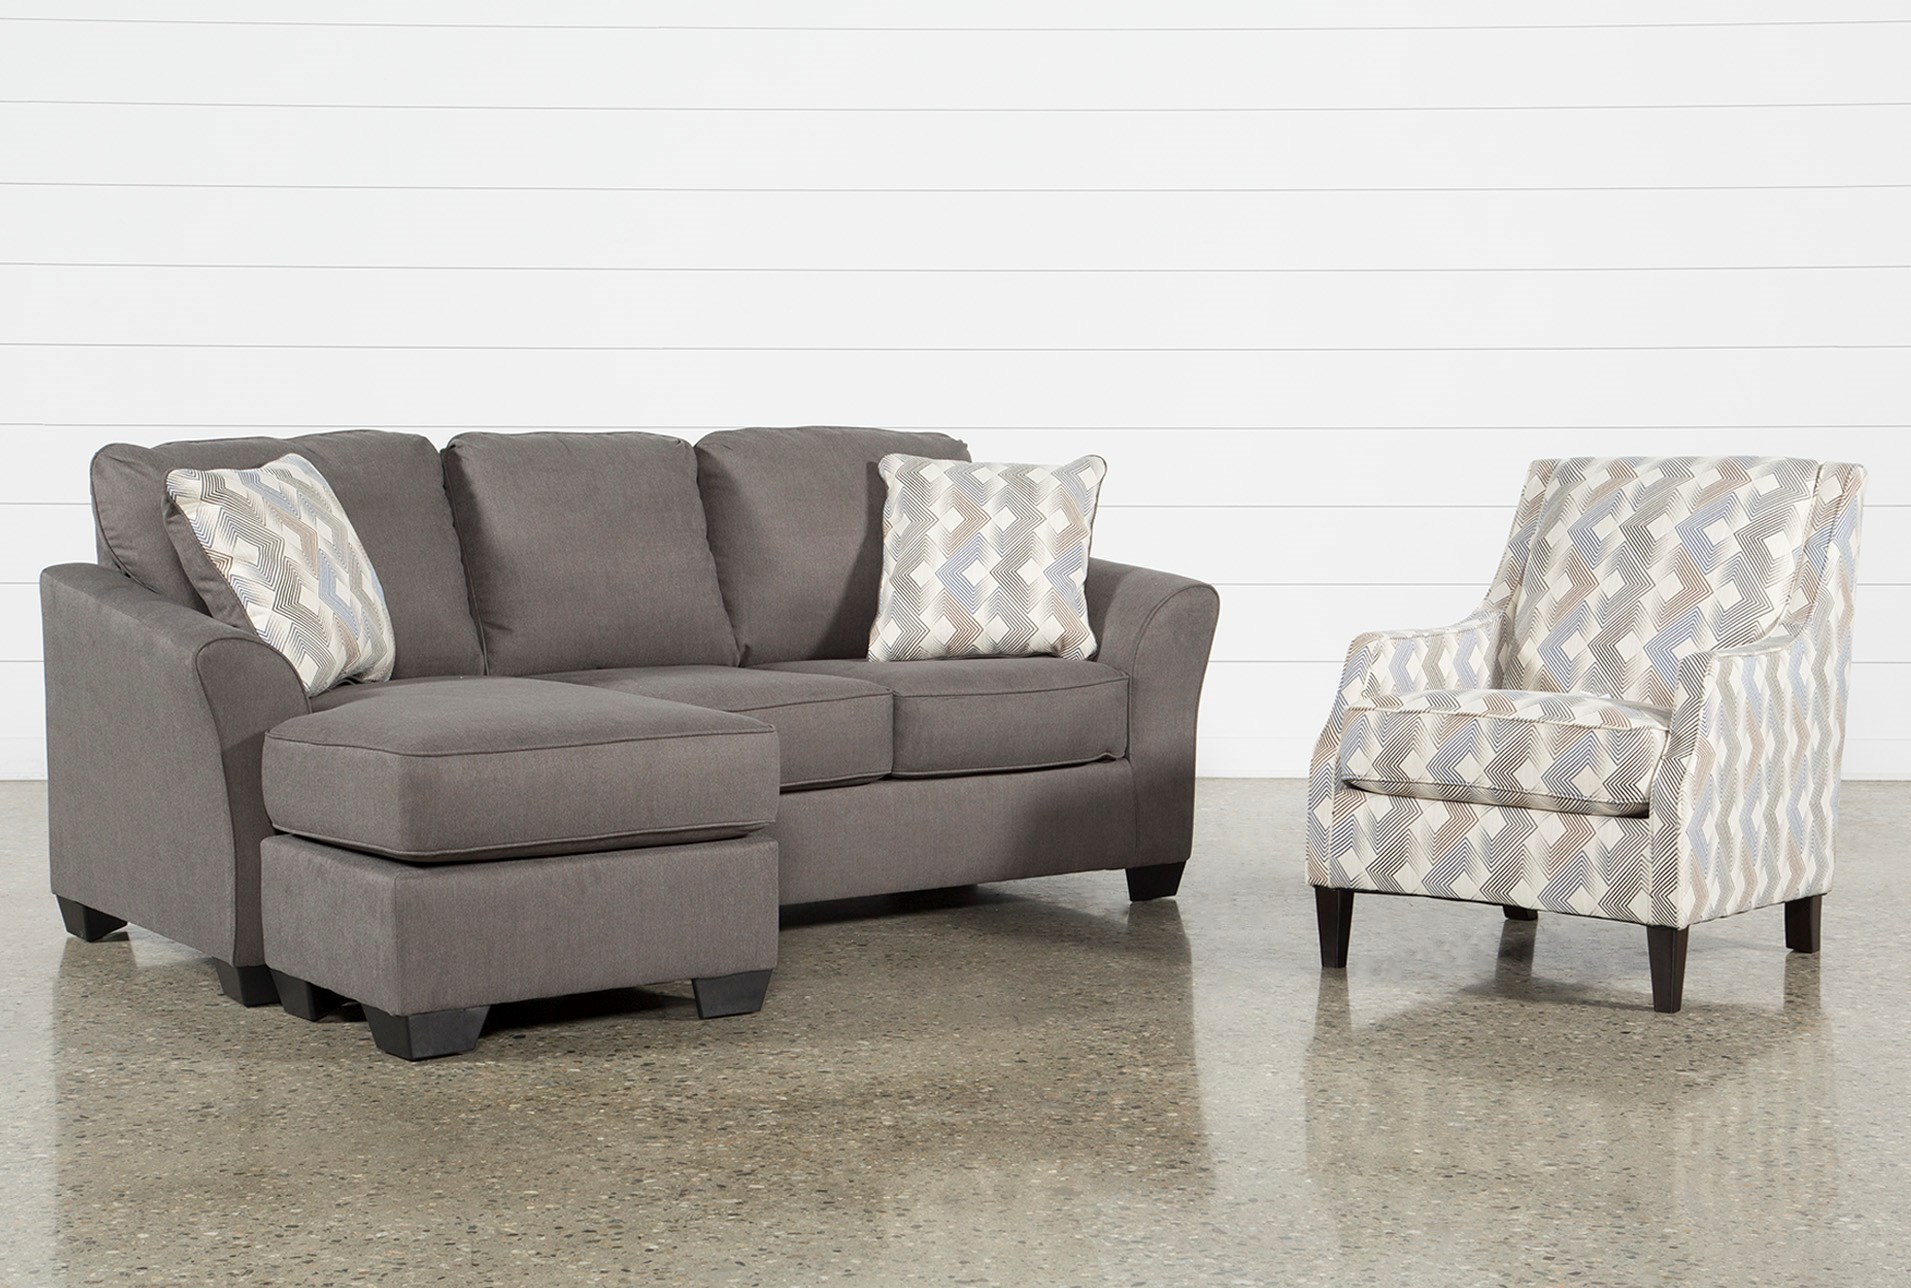 Tucker 2 Piece Living Room Set With Queen Sleeper And Accent Chair ...